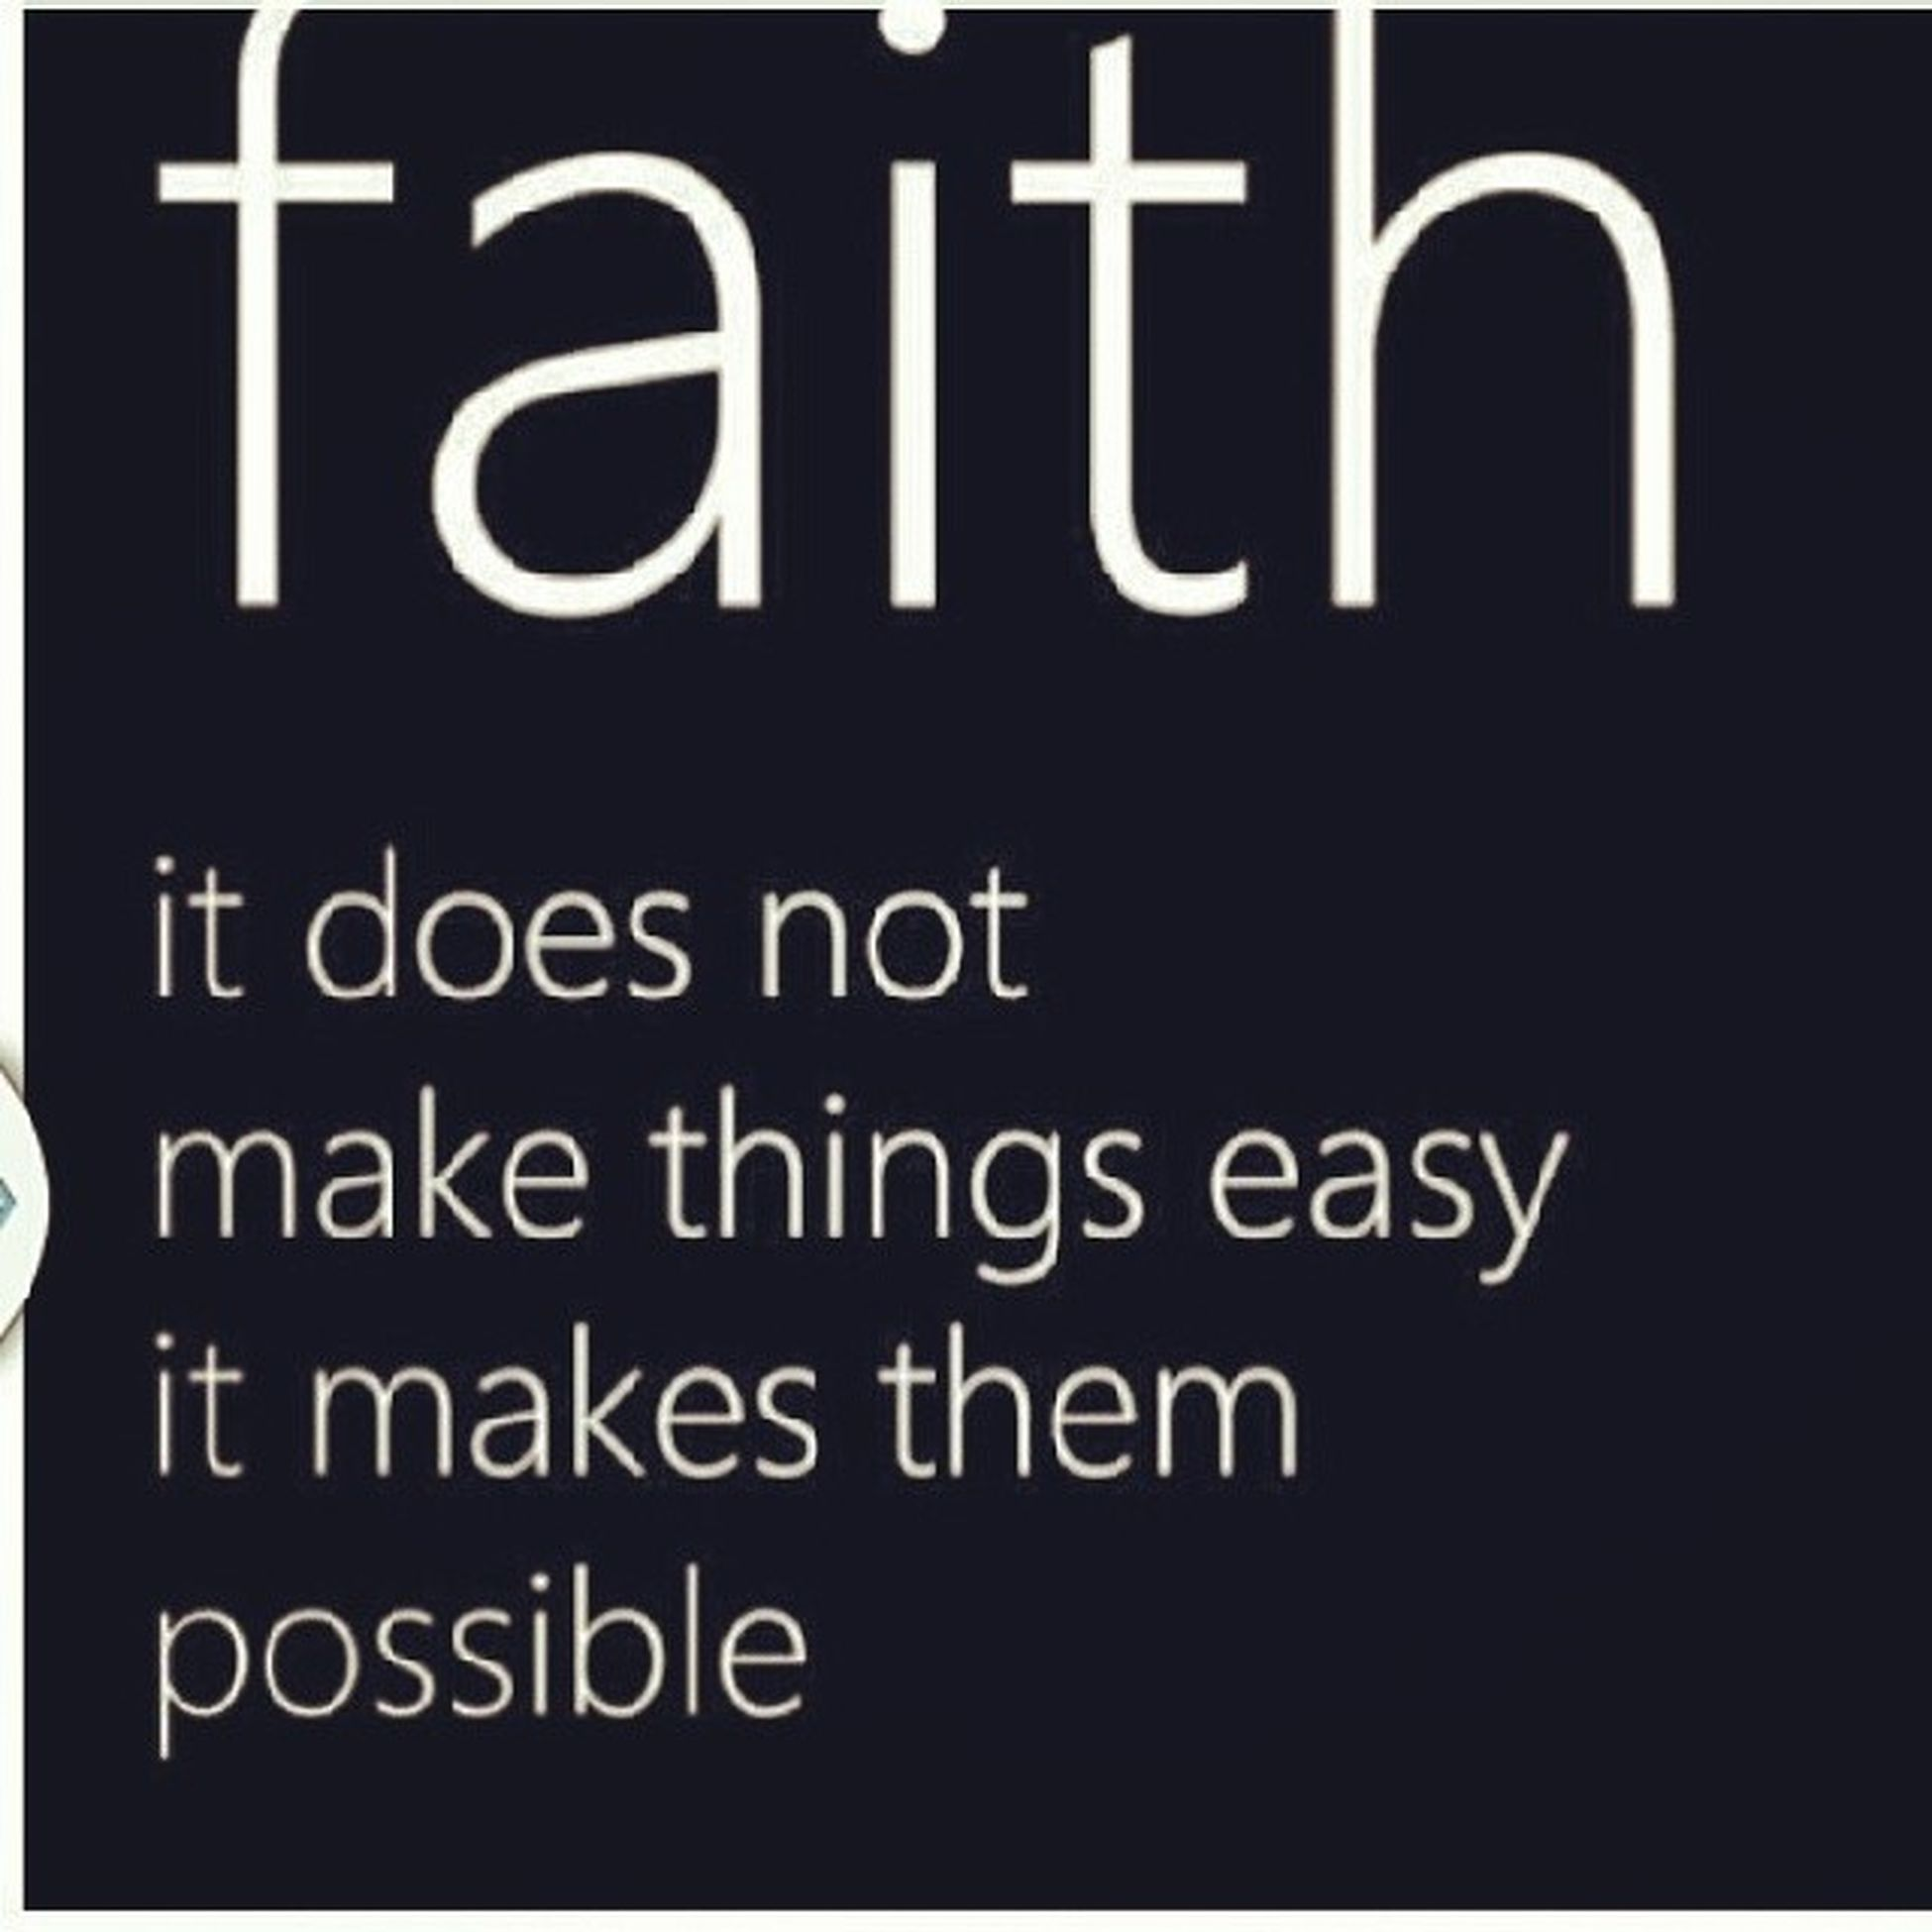 When you have FAITH in yourself you don't need others to believe in you- GodHasAPlAN FaithISKey